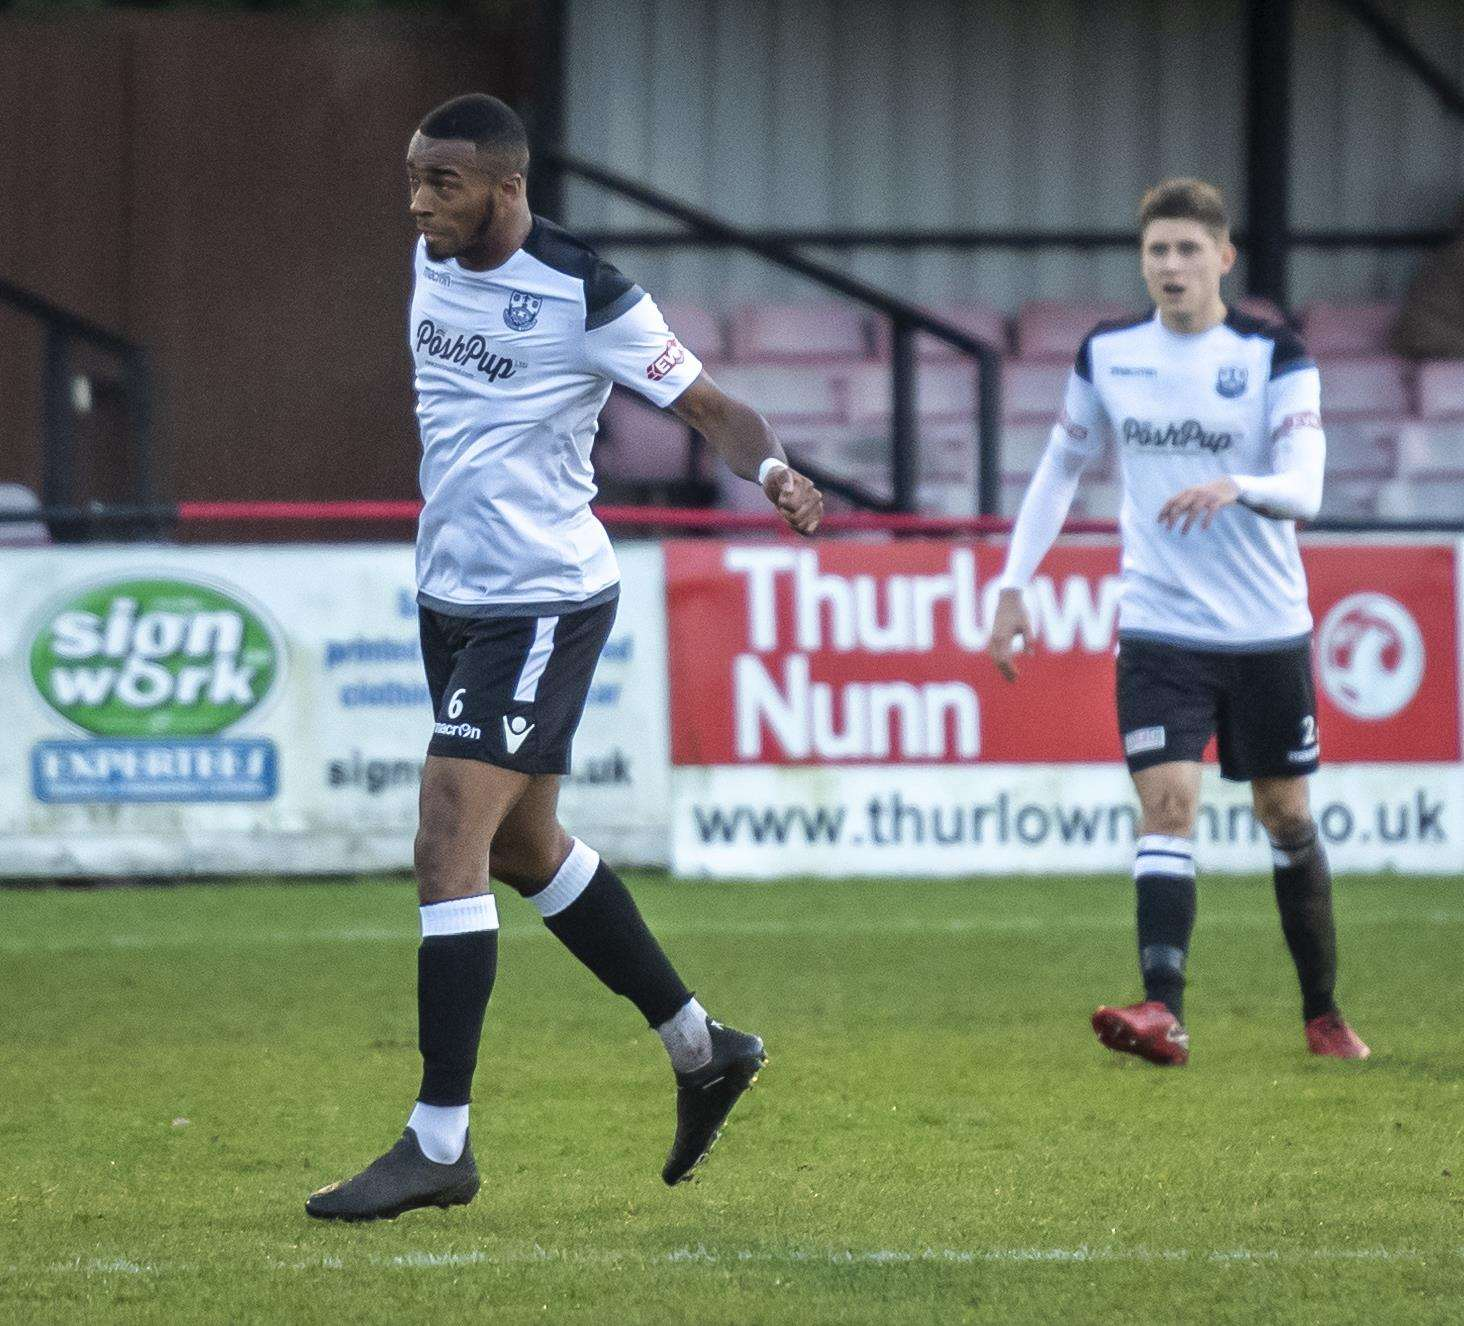 Keano Robinson scored twice for Cambridge City against Dunstable Town.